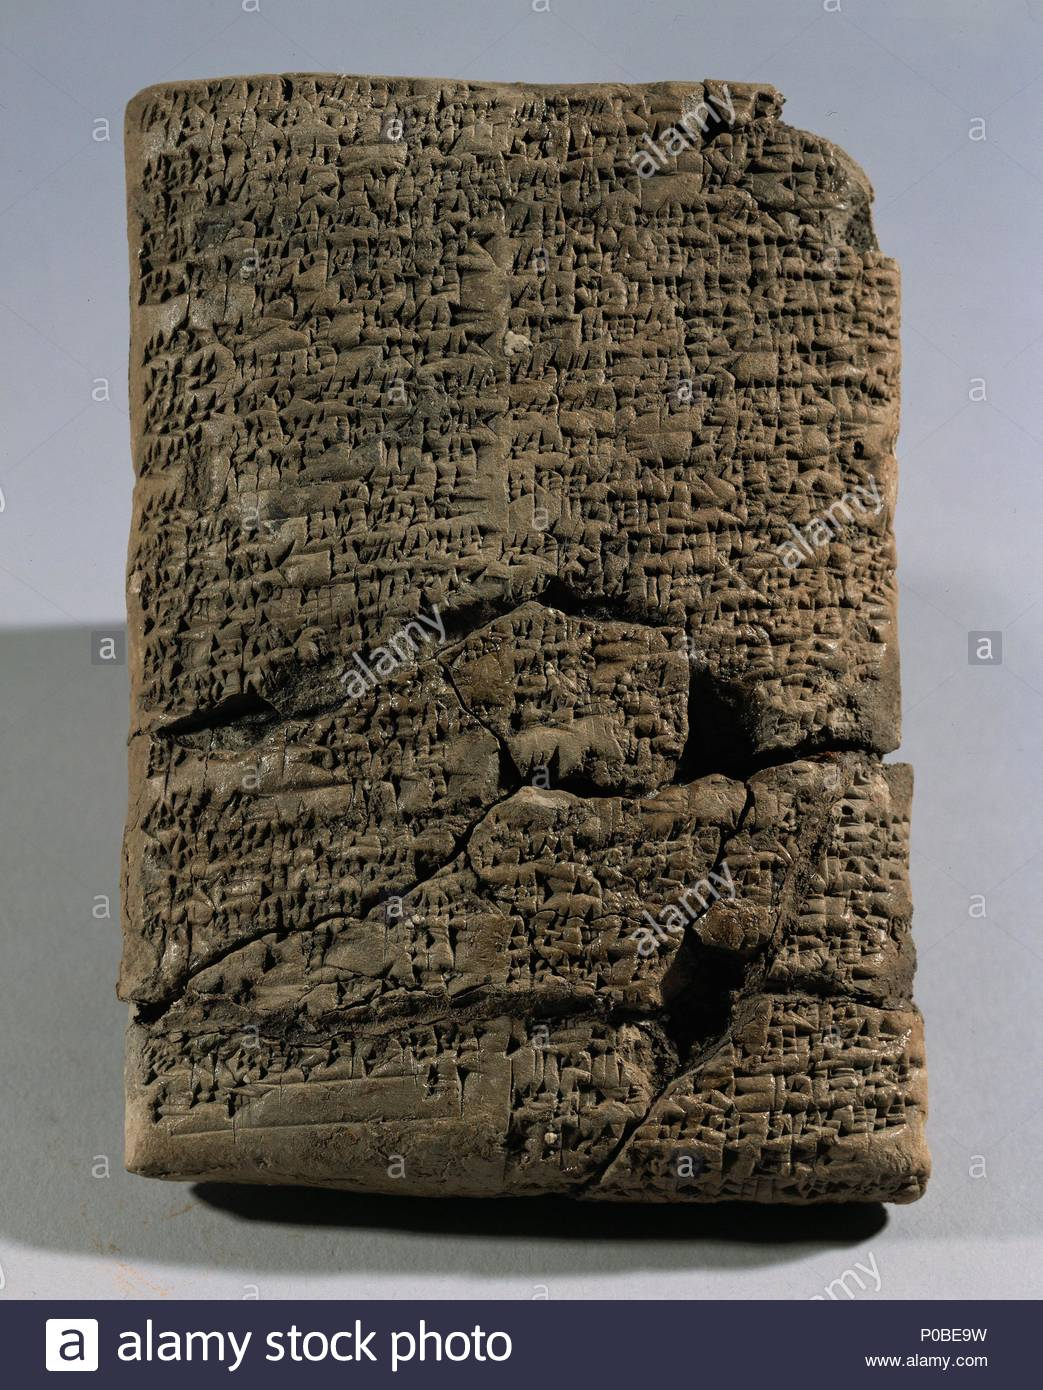 an analysis of the code of hammurabi in babylonian history According to ancient near eastern history and culture by william h stiebing jr,  created the code of hammurabi during the old babylonian dynasty (pritchard .